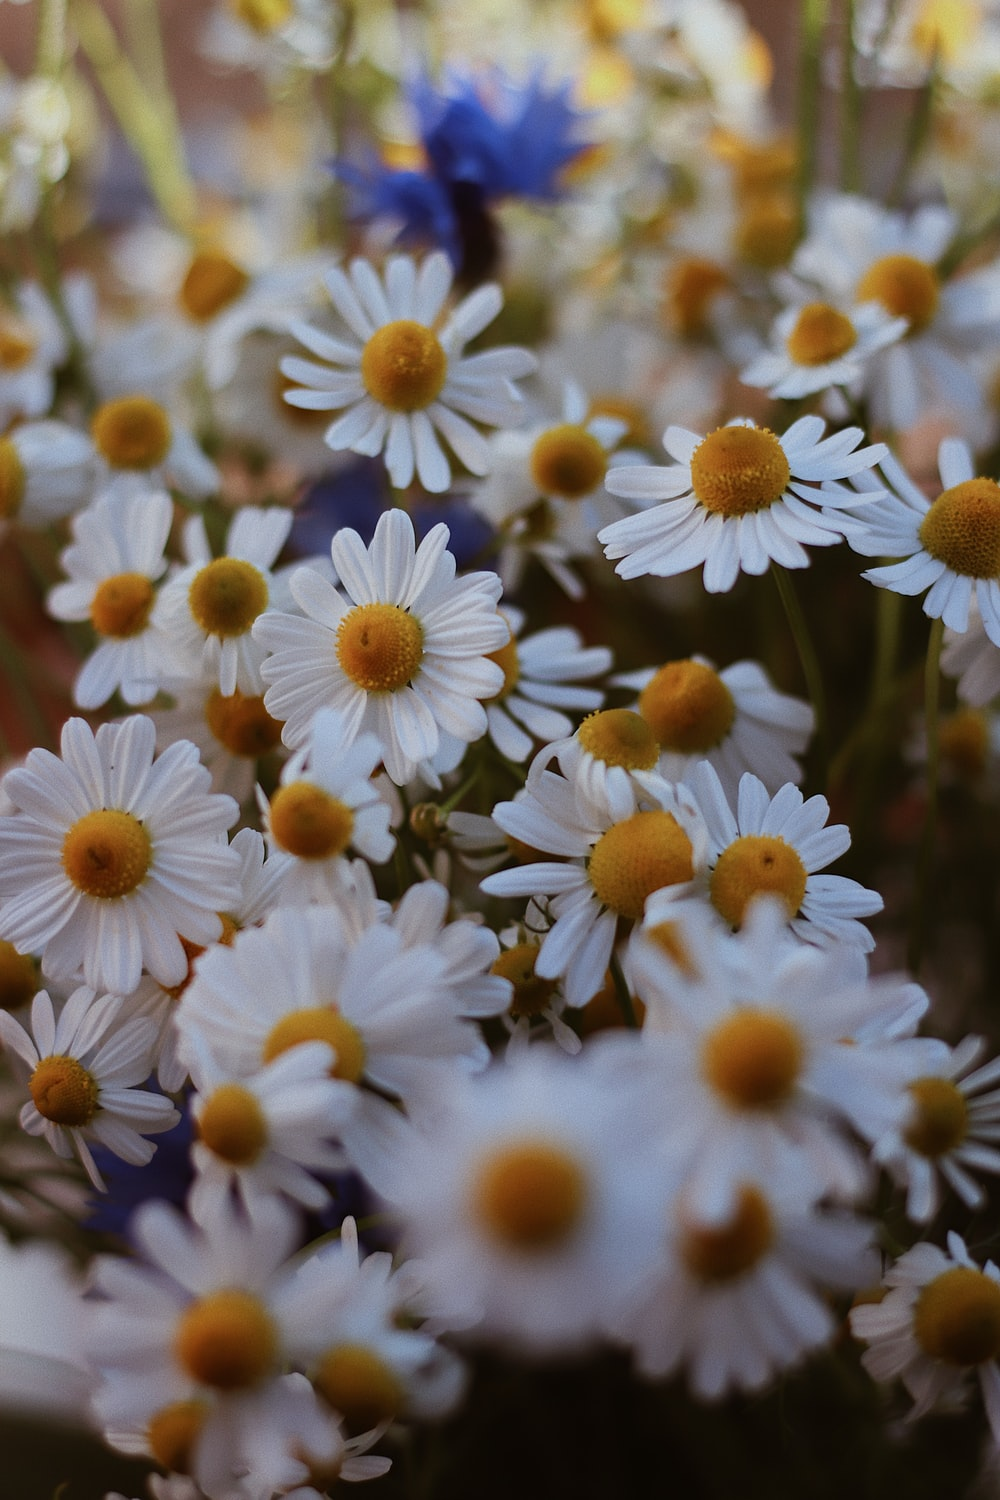 white and yellow daisy flowers